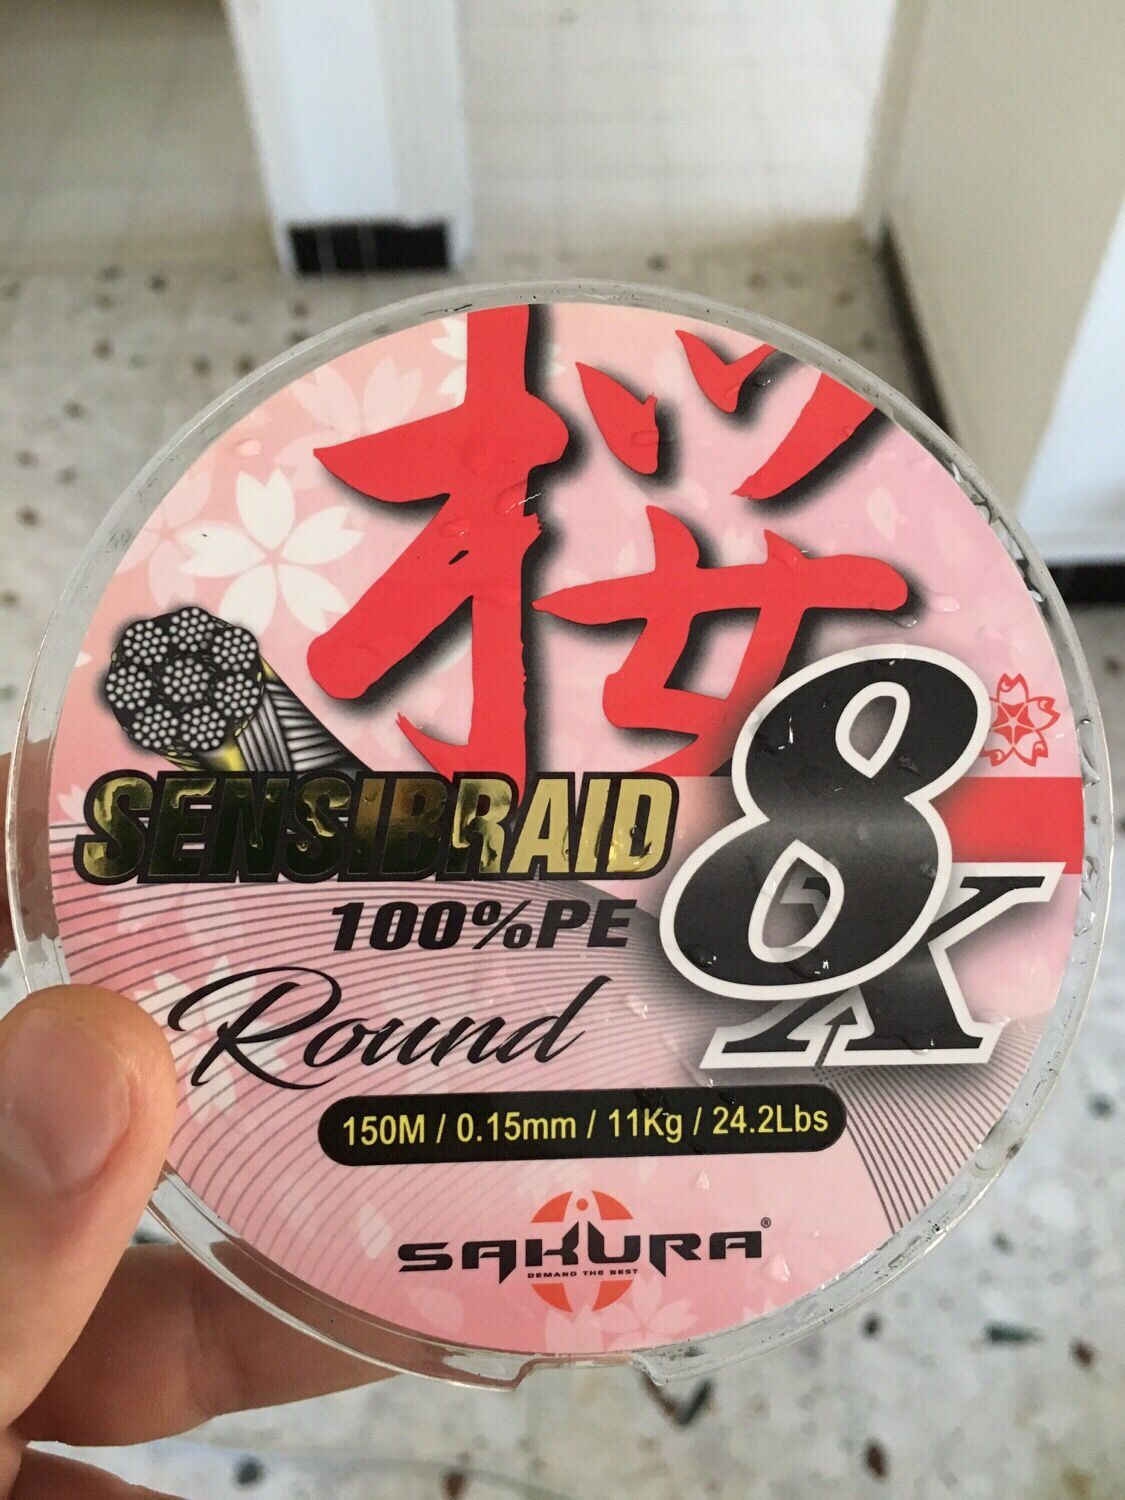 SENSIBRAID 100% 0.15MM SAKURA 8X